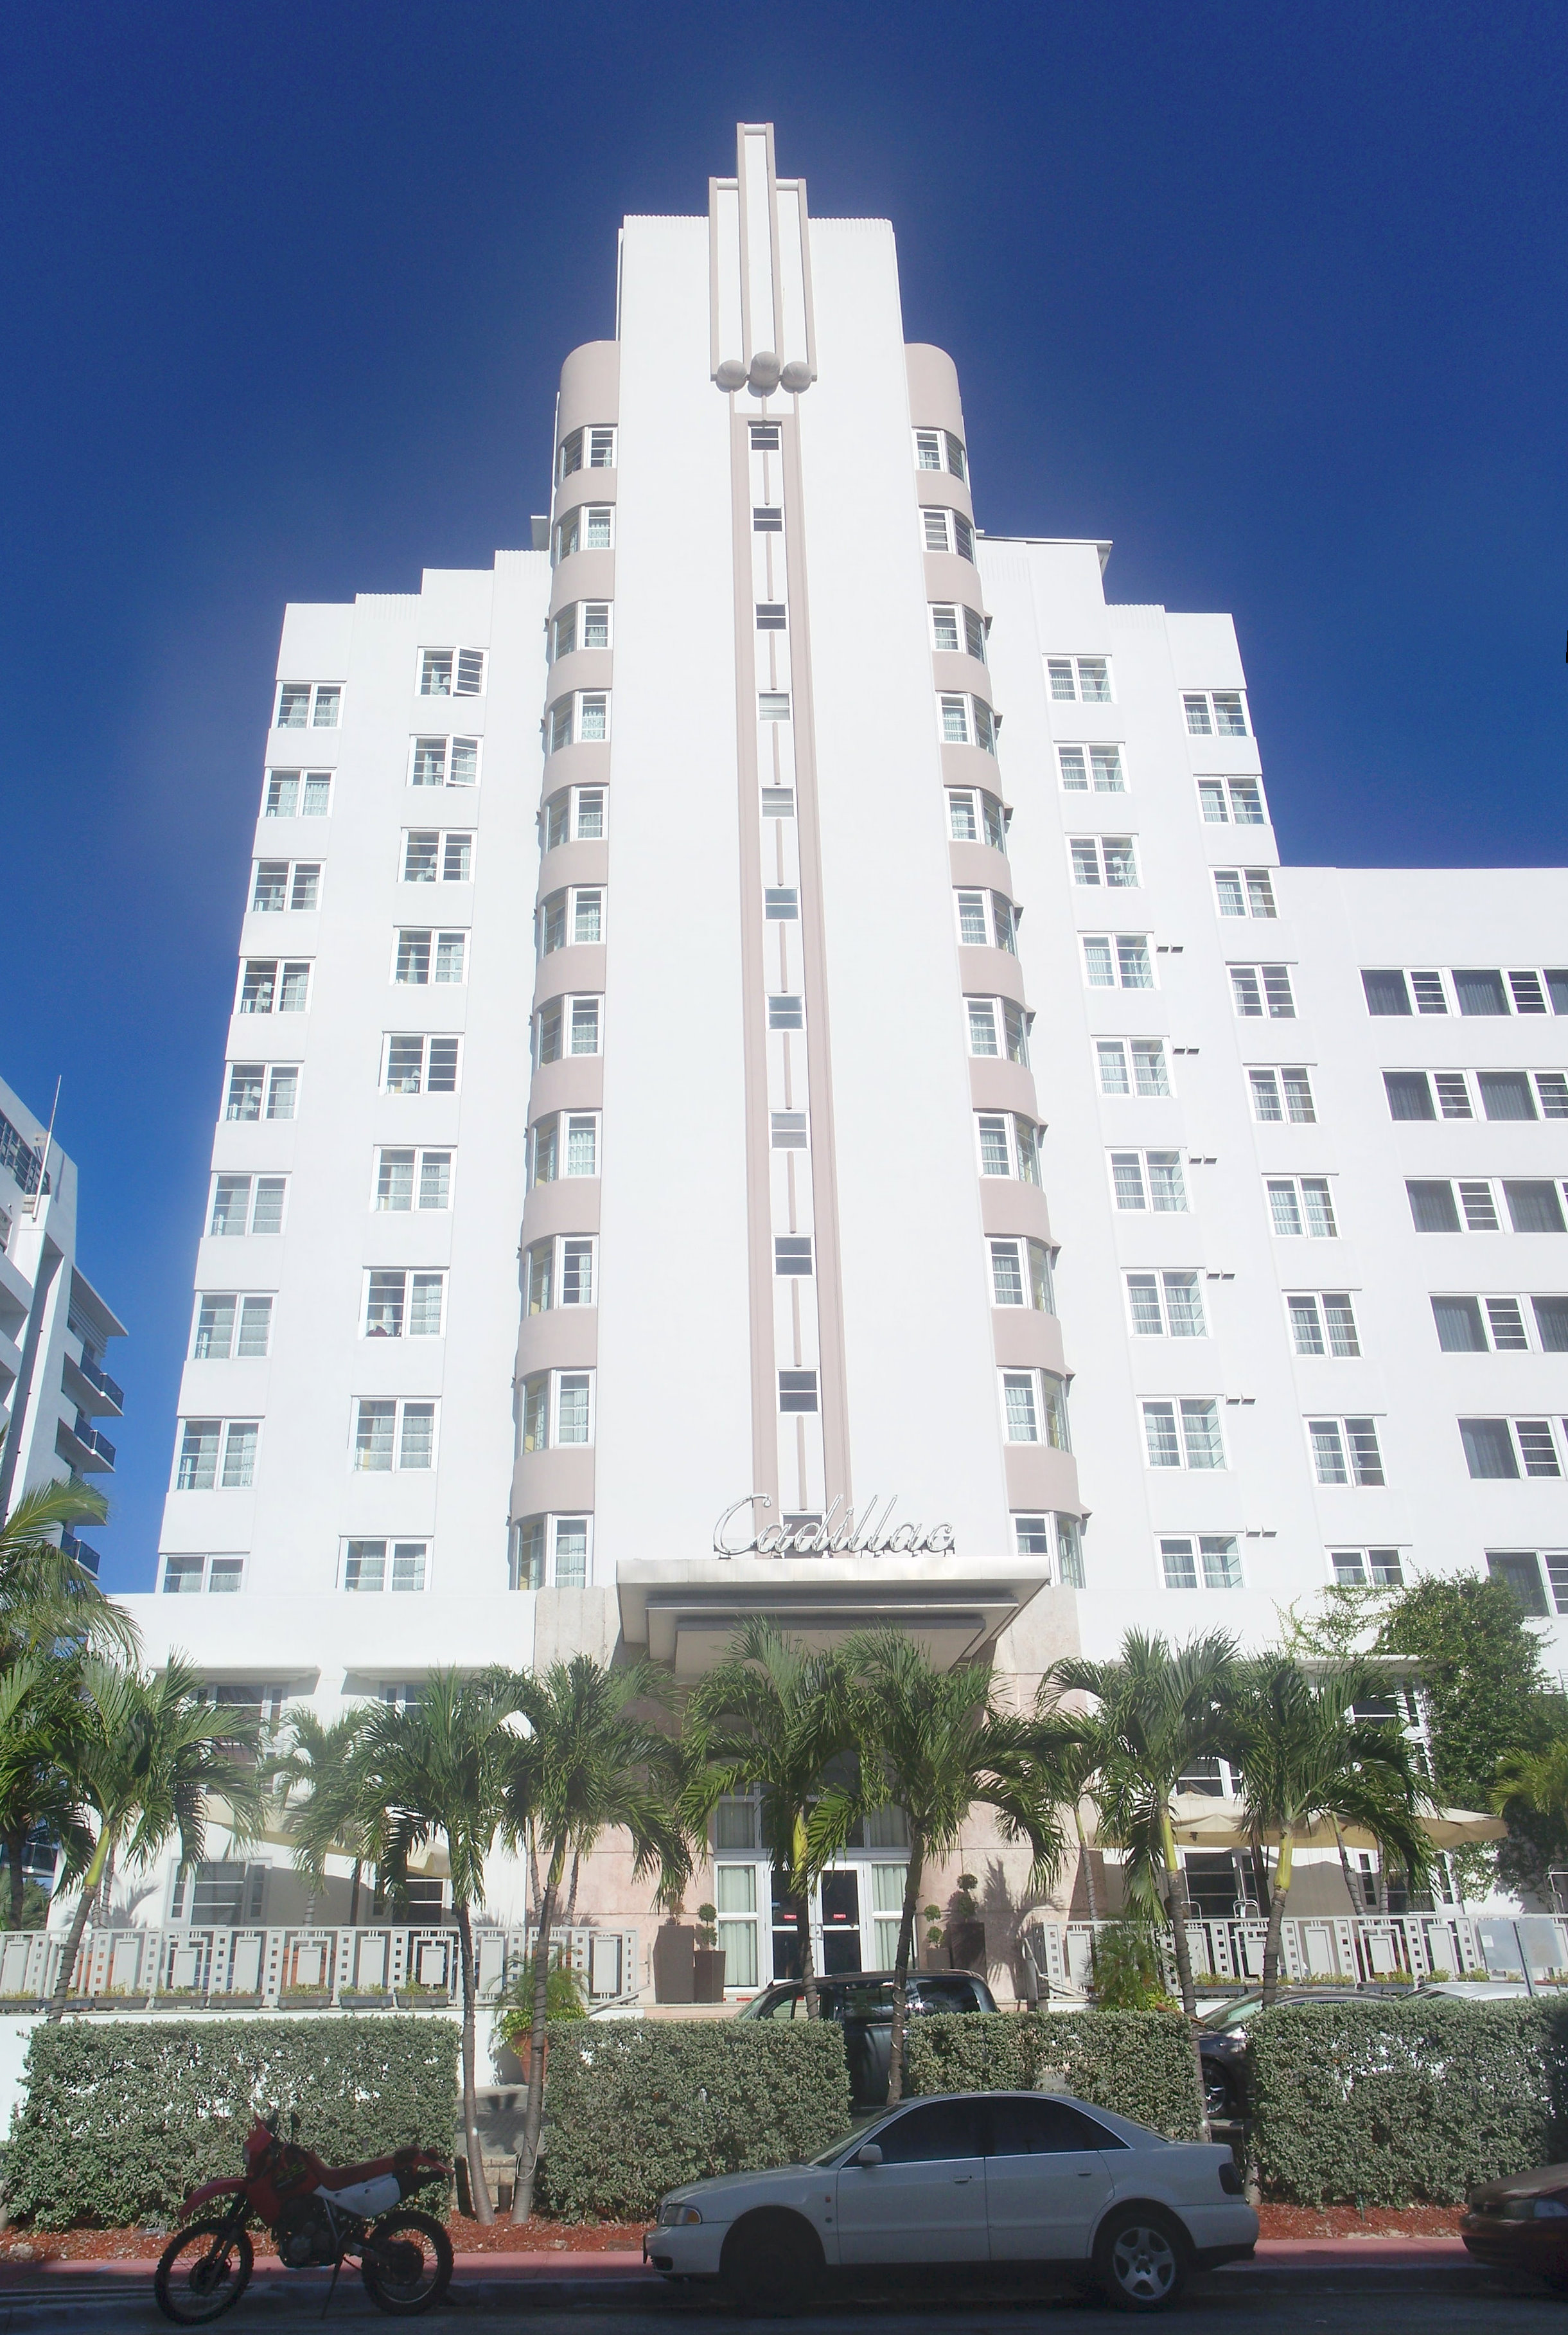 cadillac unique beach of reviews advisor south courtyard hotel bentley miami lovely